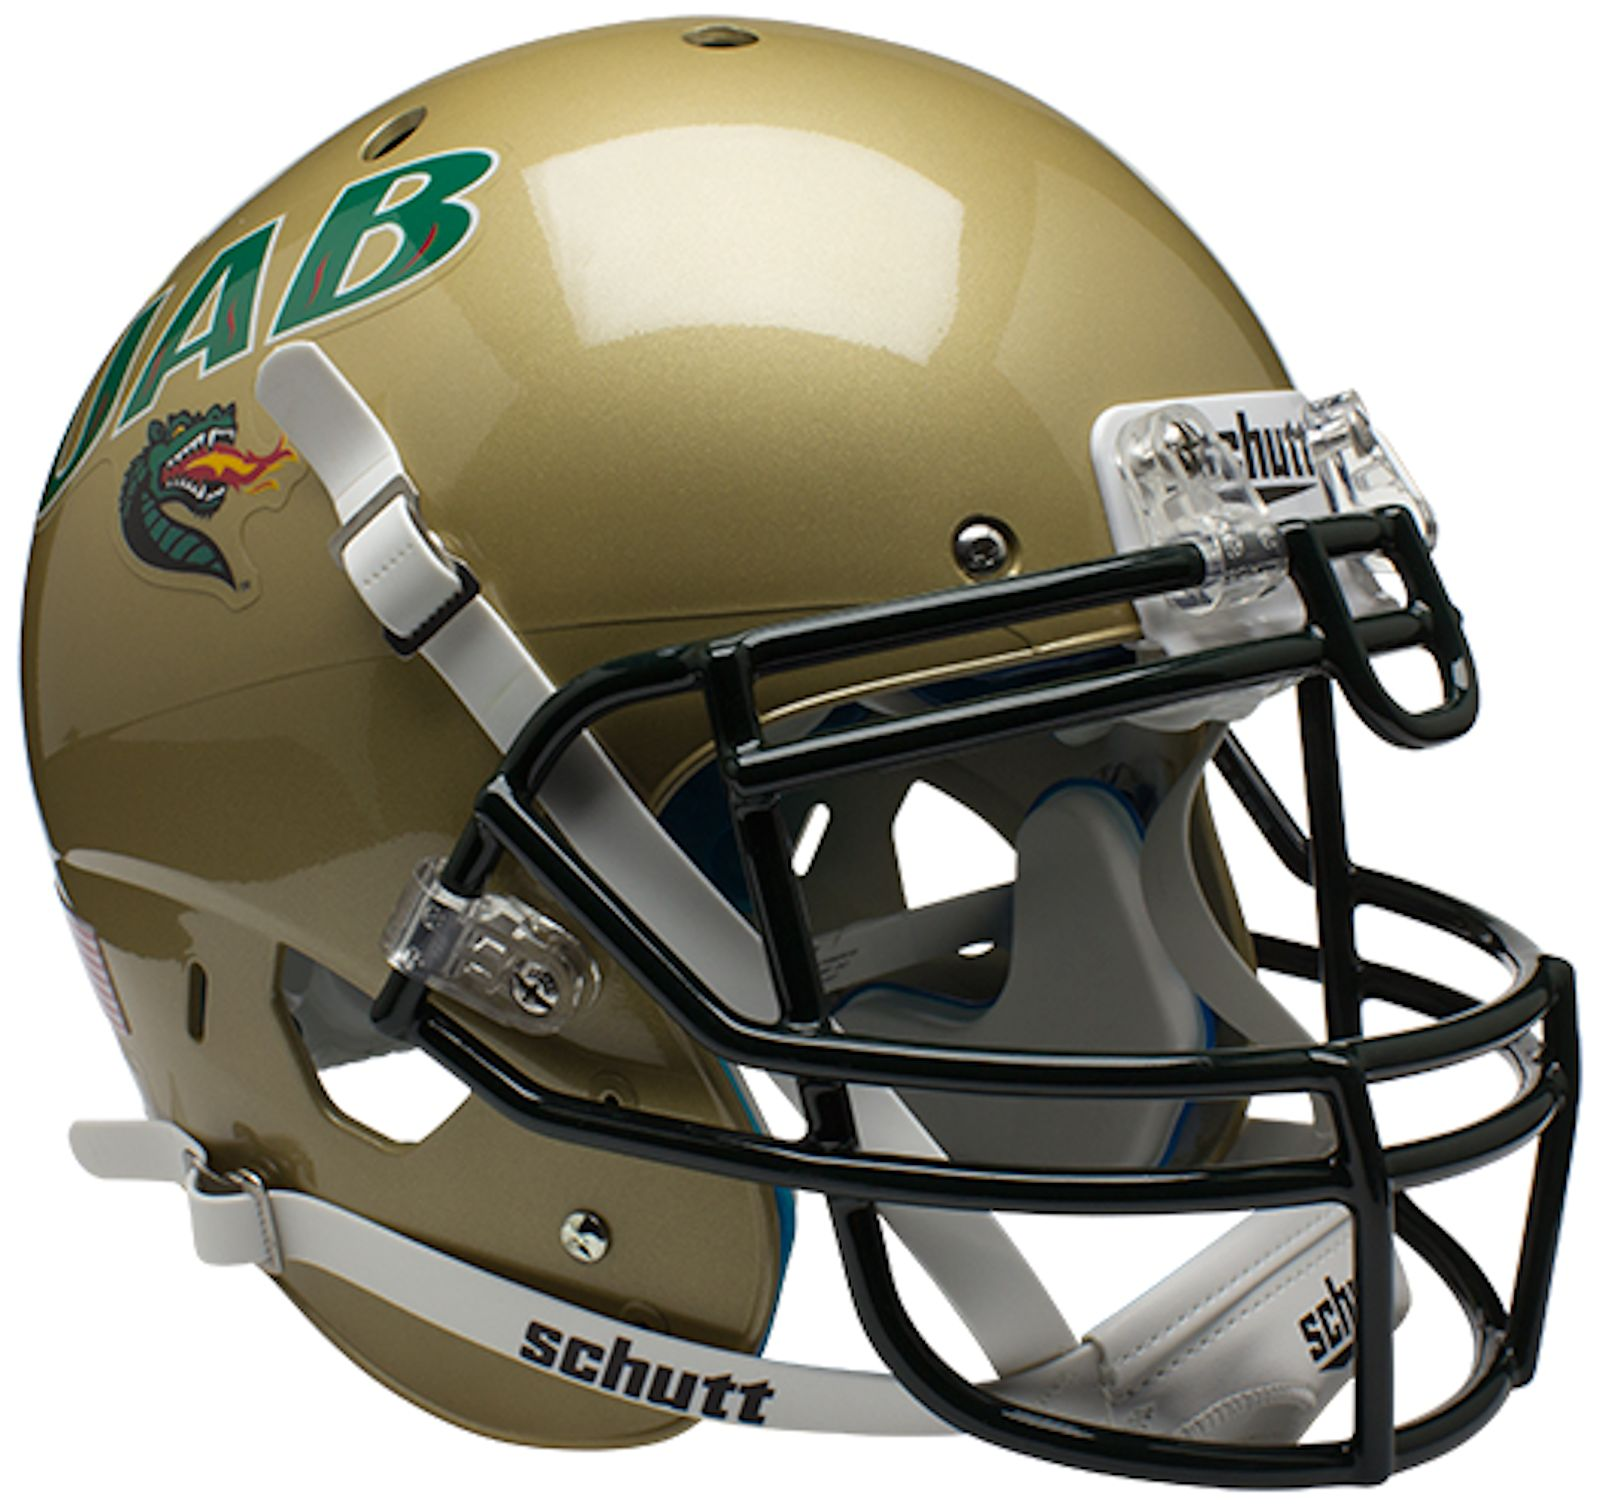 Alabama-Birmingham (UAB) Blazers Authentic College XP Football Helmet Schutt